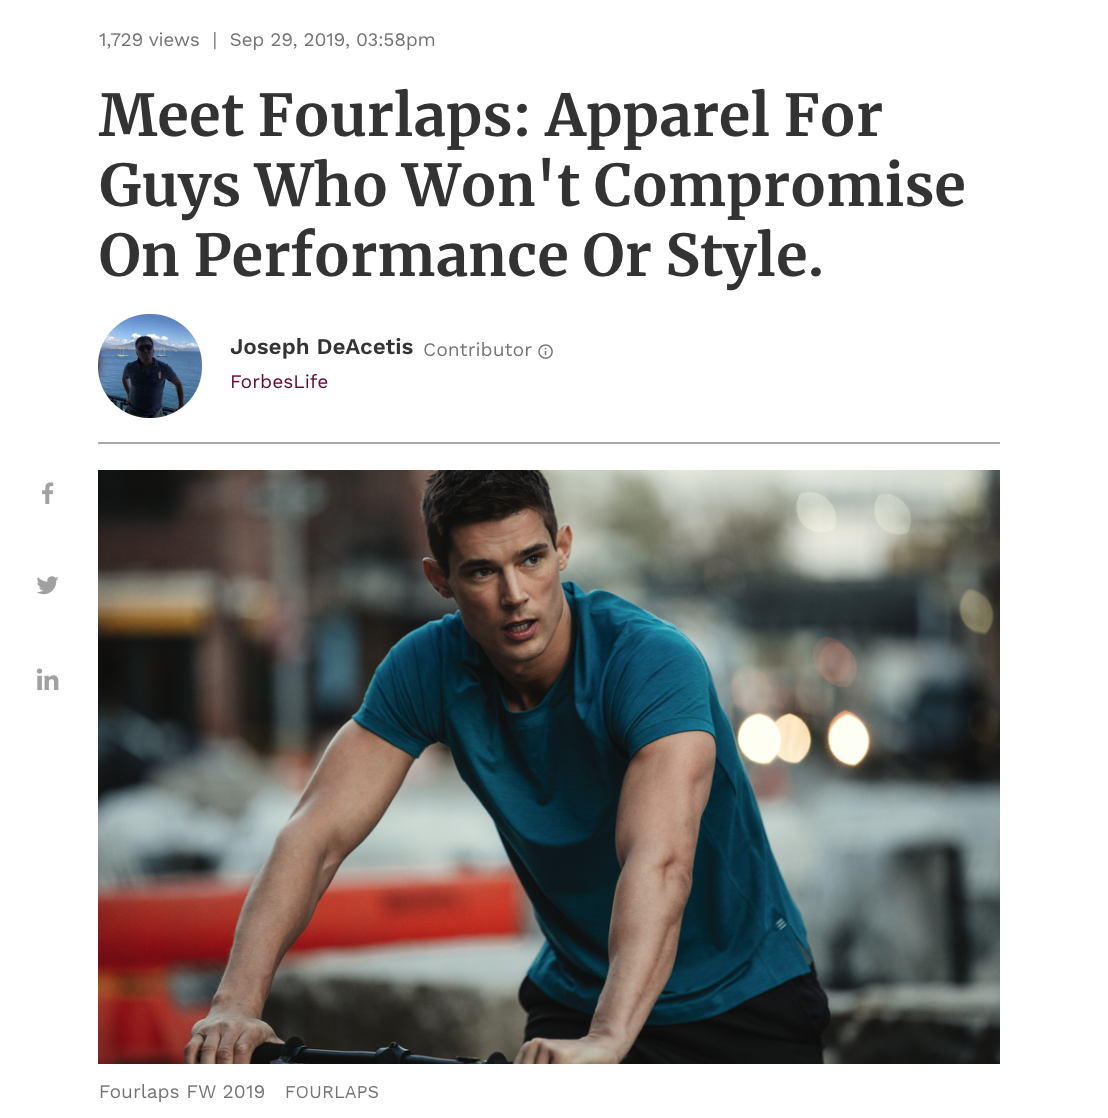 https://www.forbes.com/sites/josephdeacetis/2019/09/29/meet-fourlaps-apparel-for-guys-who-wont-compromise-on-performance-or-style/#463c43a017a2